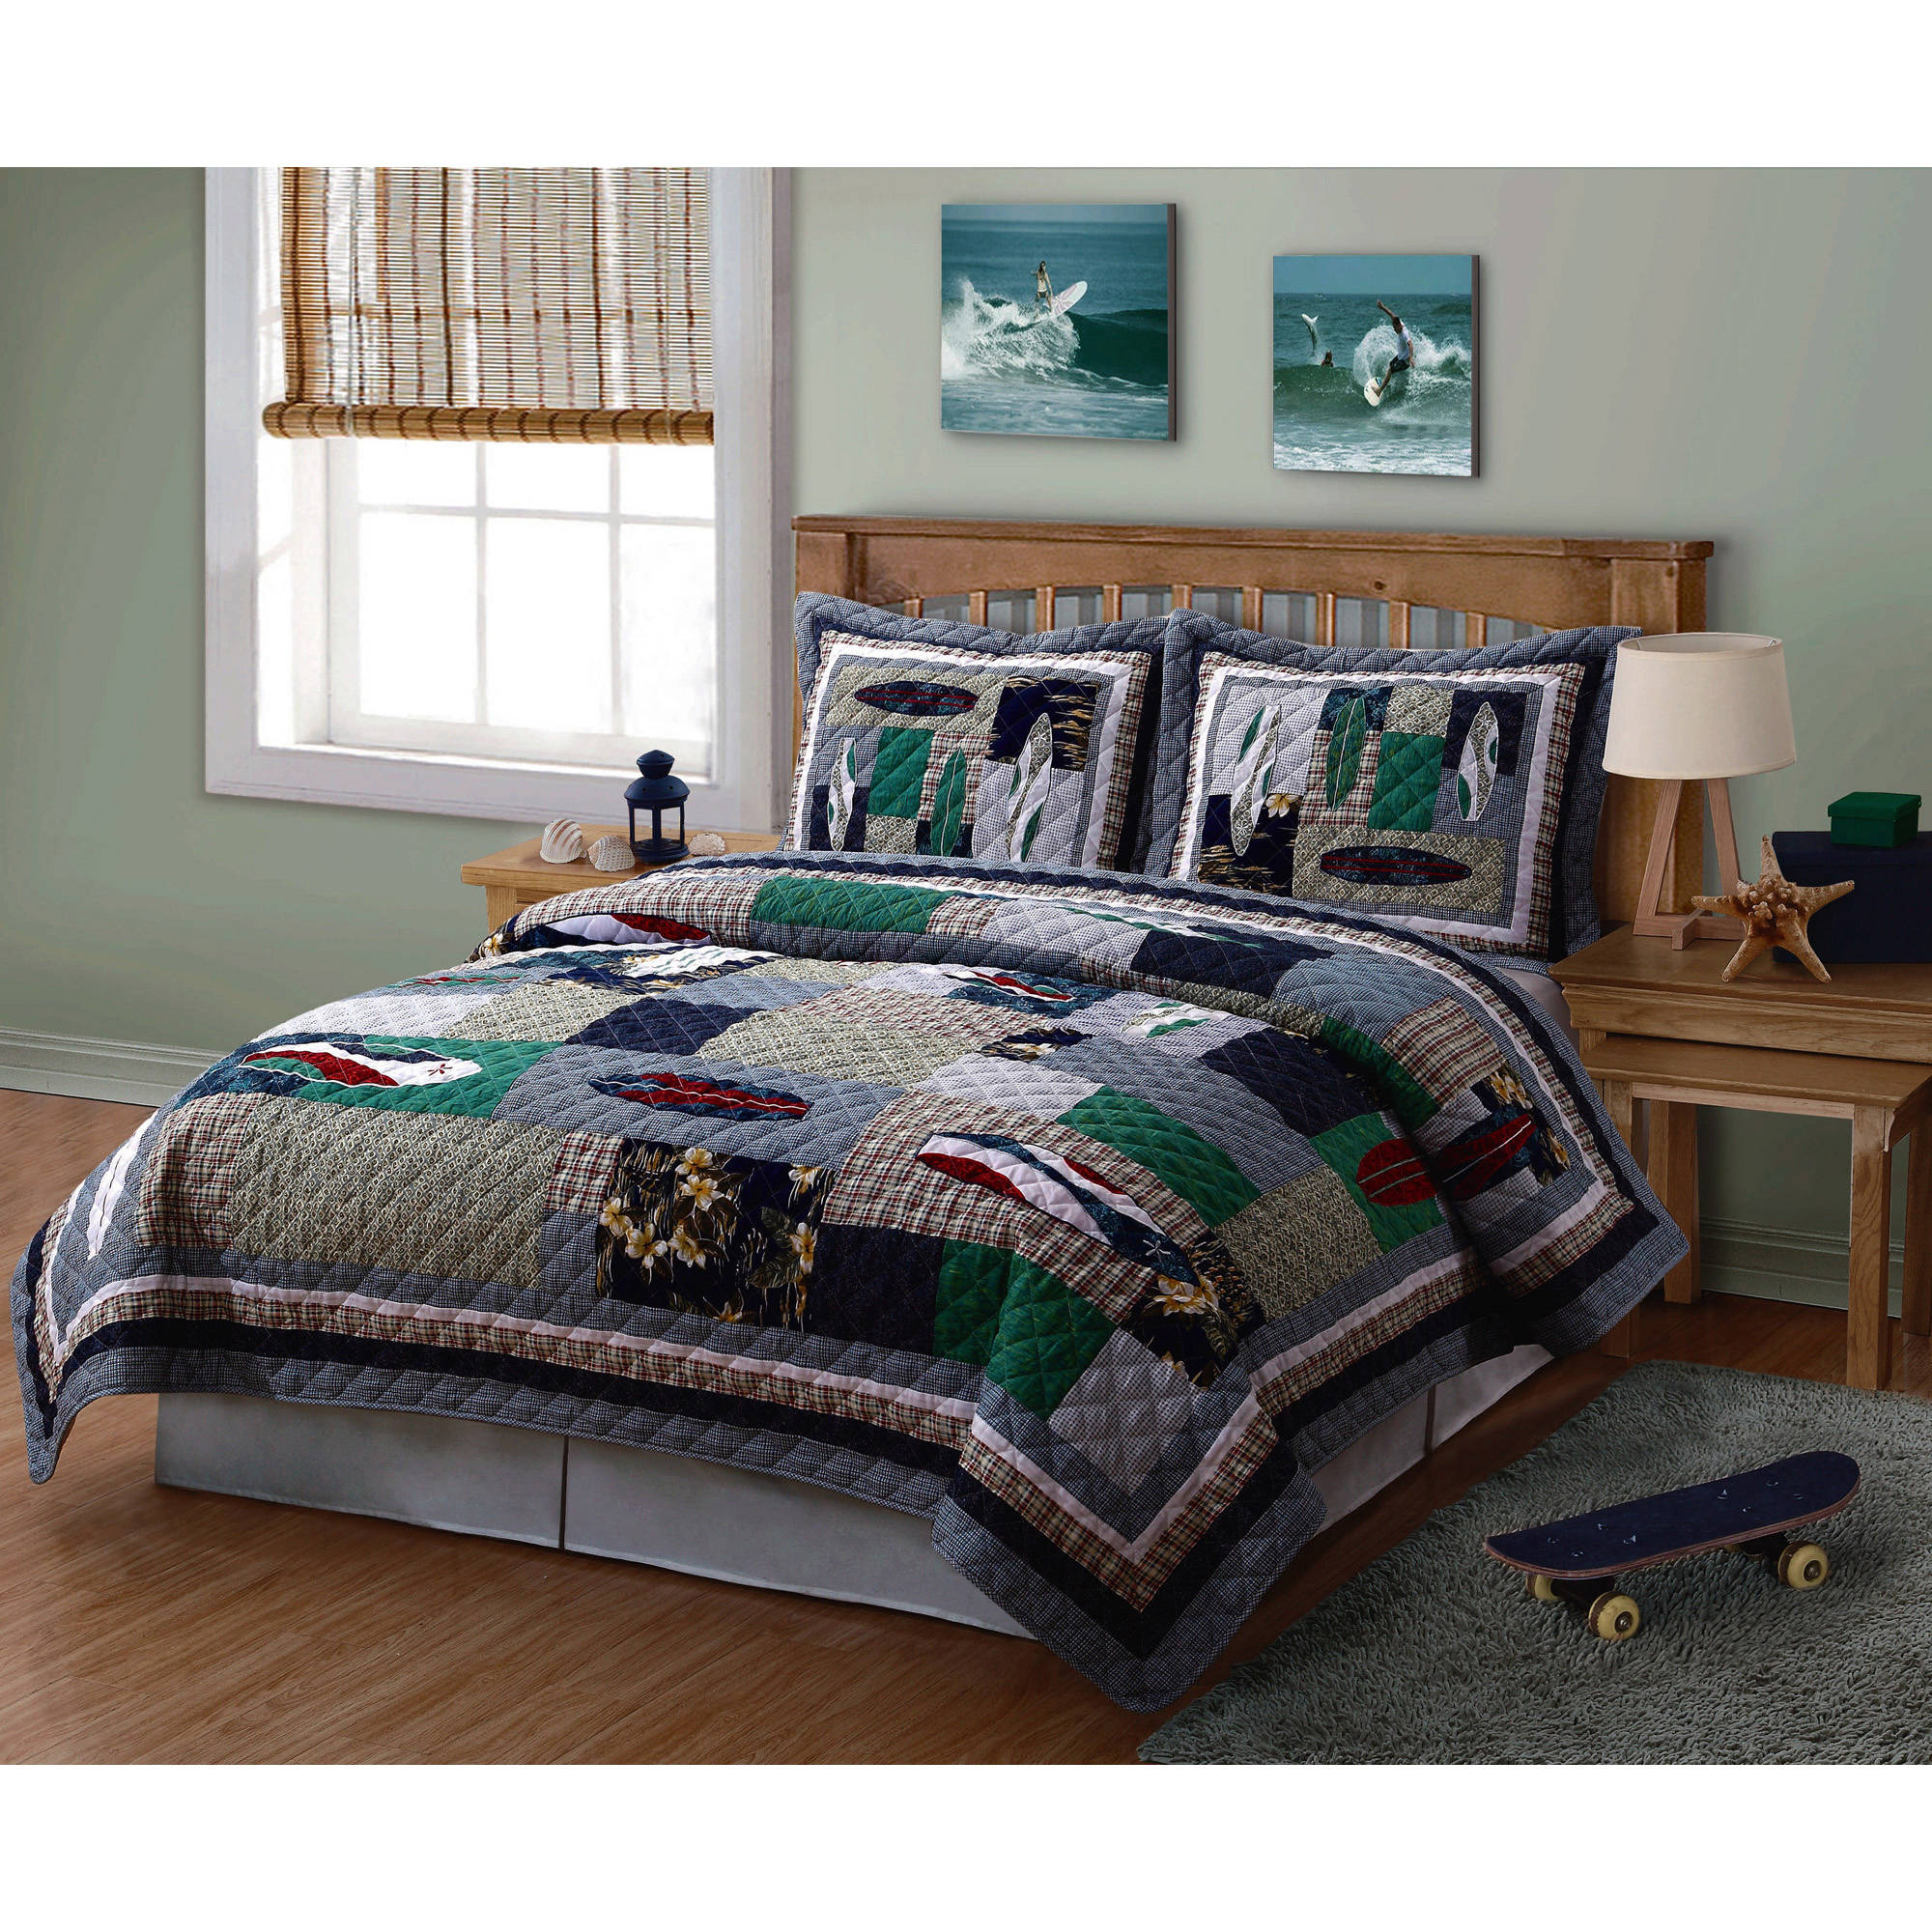 My World Surfing USA 3 Piece Quilt Set